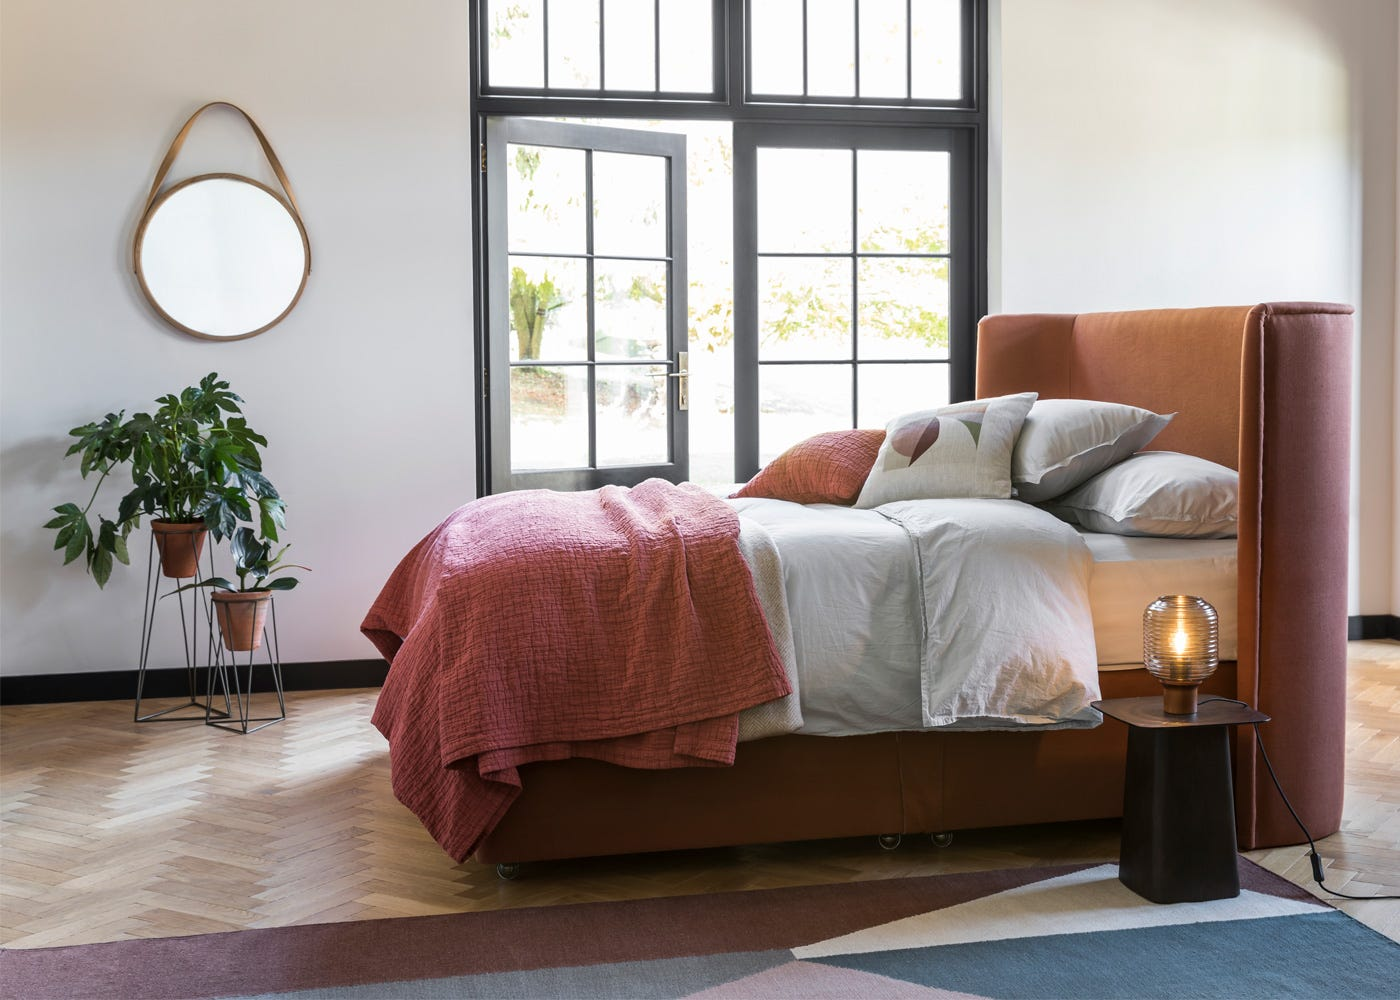 Monroe Bed with Jara Planters and Tom Raffield's Harlyn Mirror